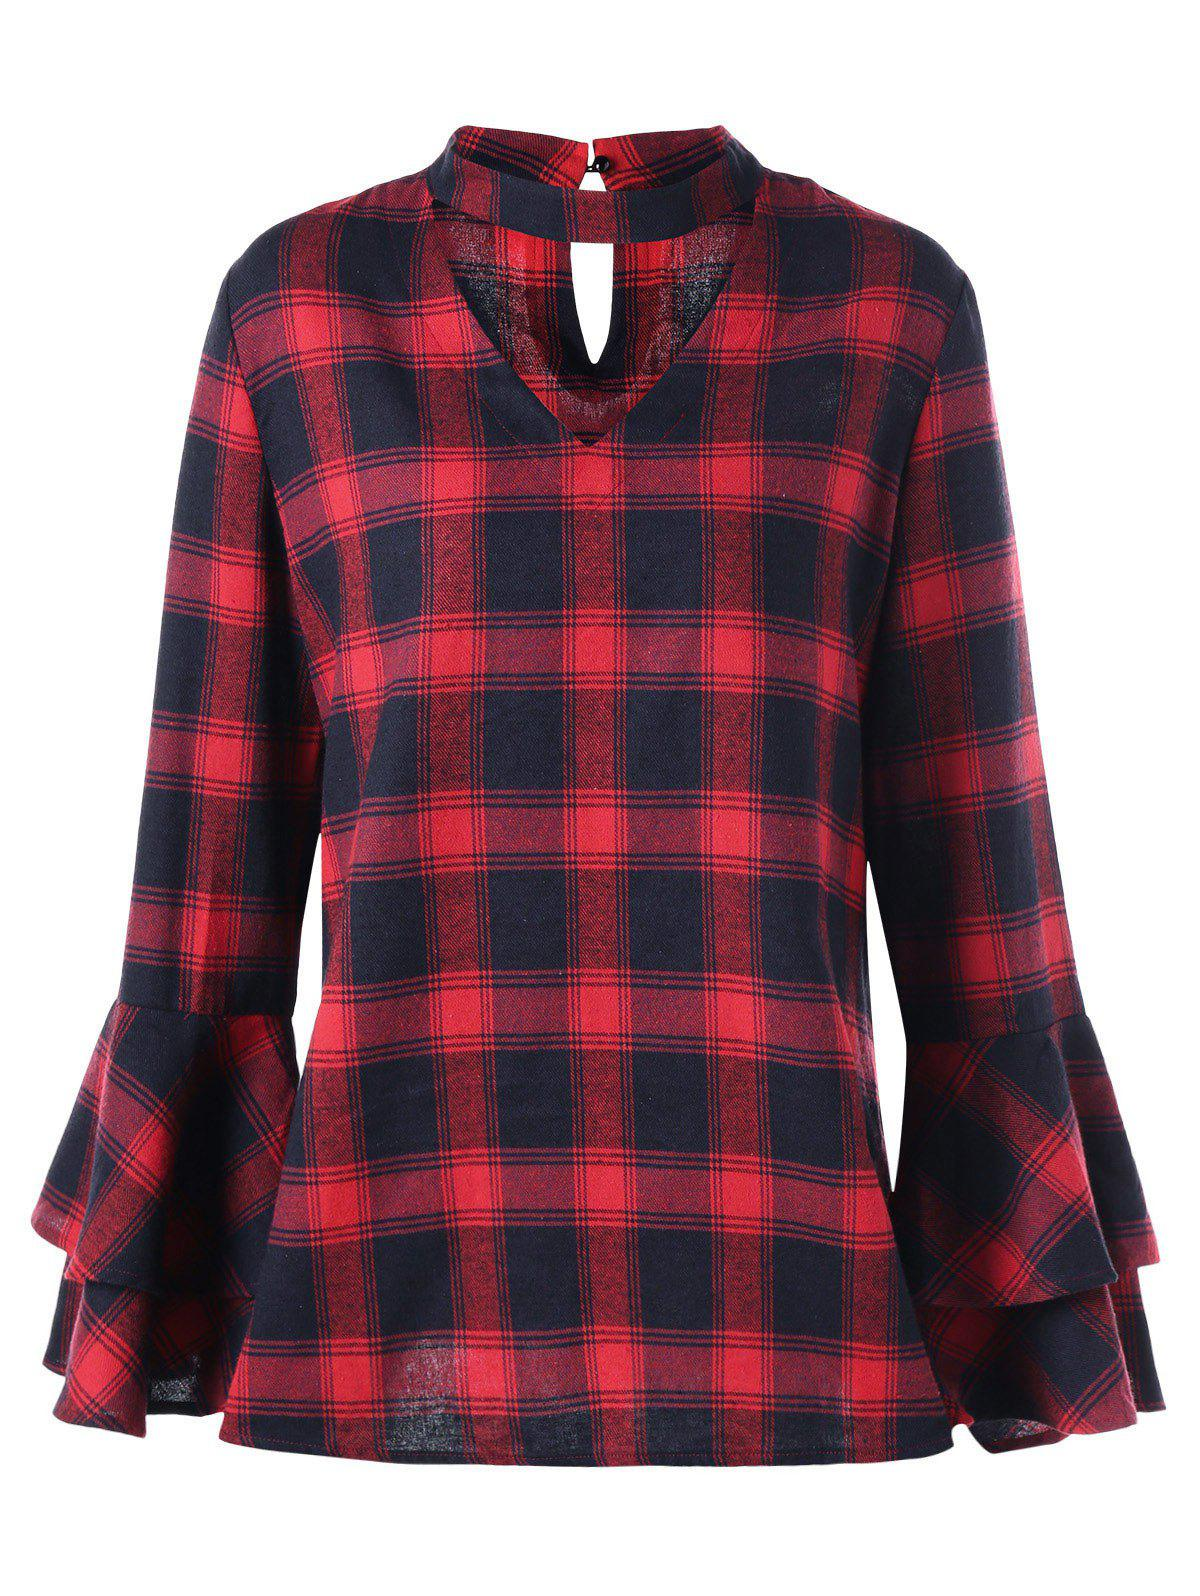 Plus Size Plaid Bell Sleeve Choker BlouseWOMEN<br><br>Size: 3XL; Color: RED WITH BLACK; Material: Polyester,Rayon; Shirt Length: Long; Sleeve Length: Full; Collar: High Collar; Style: Fashion; Season: Fall,Spring; Pattern Type: Plaid; Weight: 0.3100kg; Package Contents: 1 x Blouse;